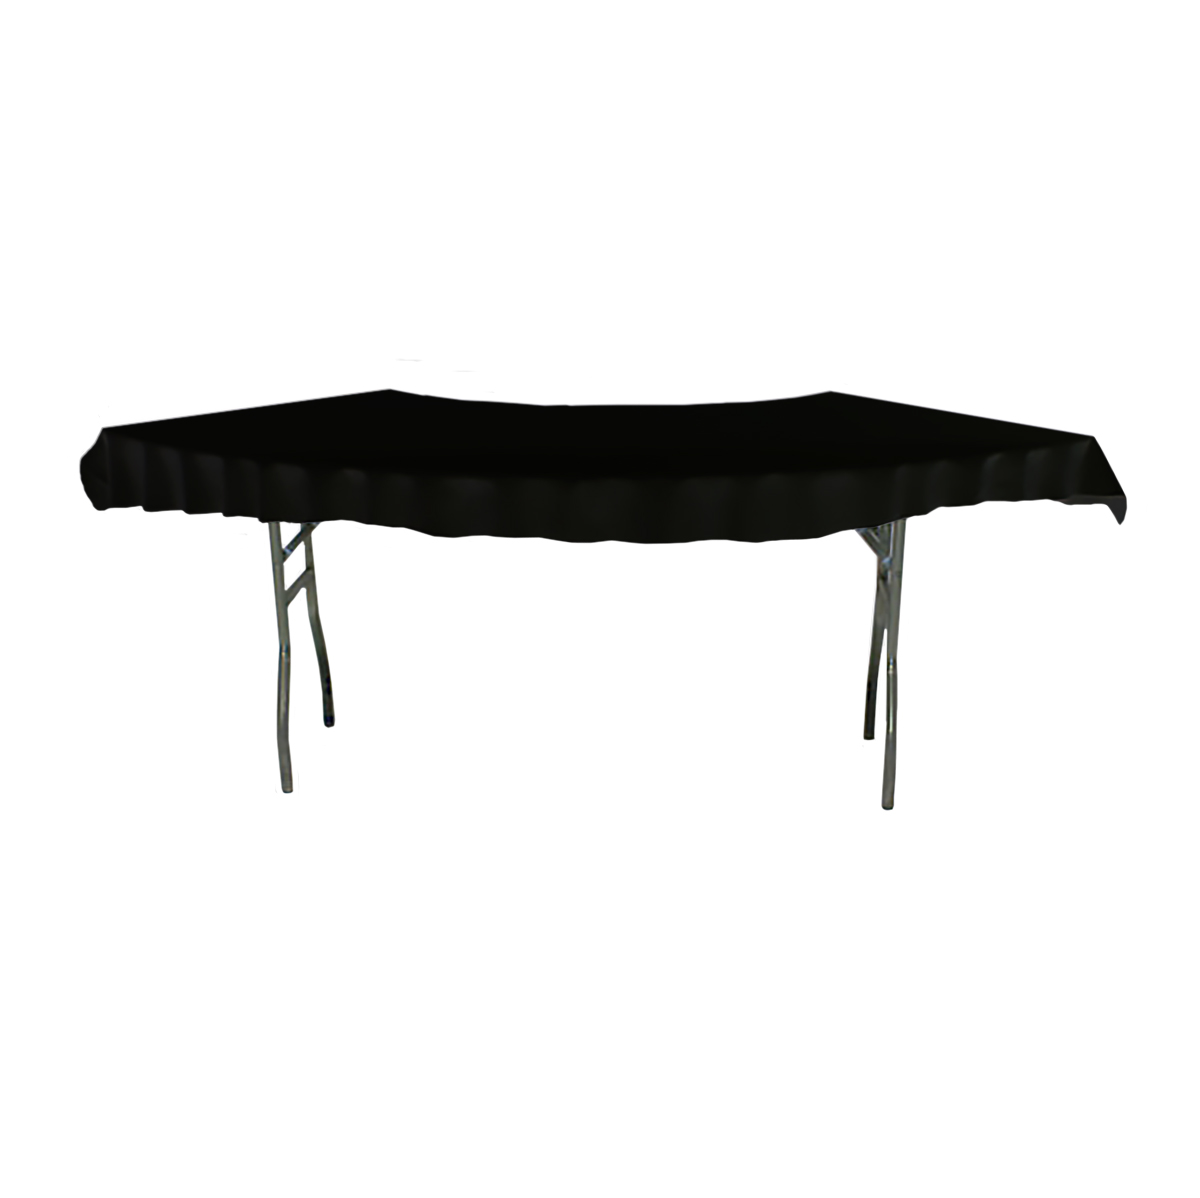 Serpentine Tablecover Top Black